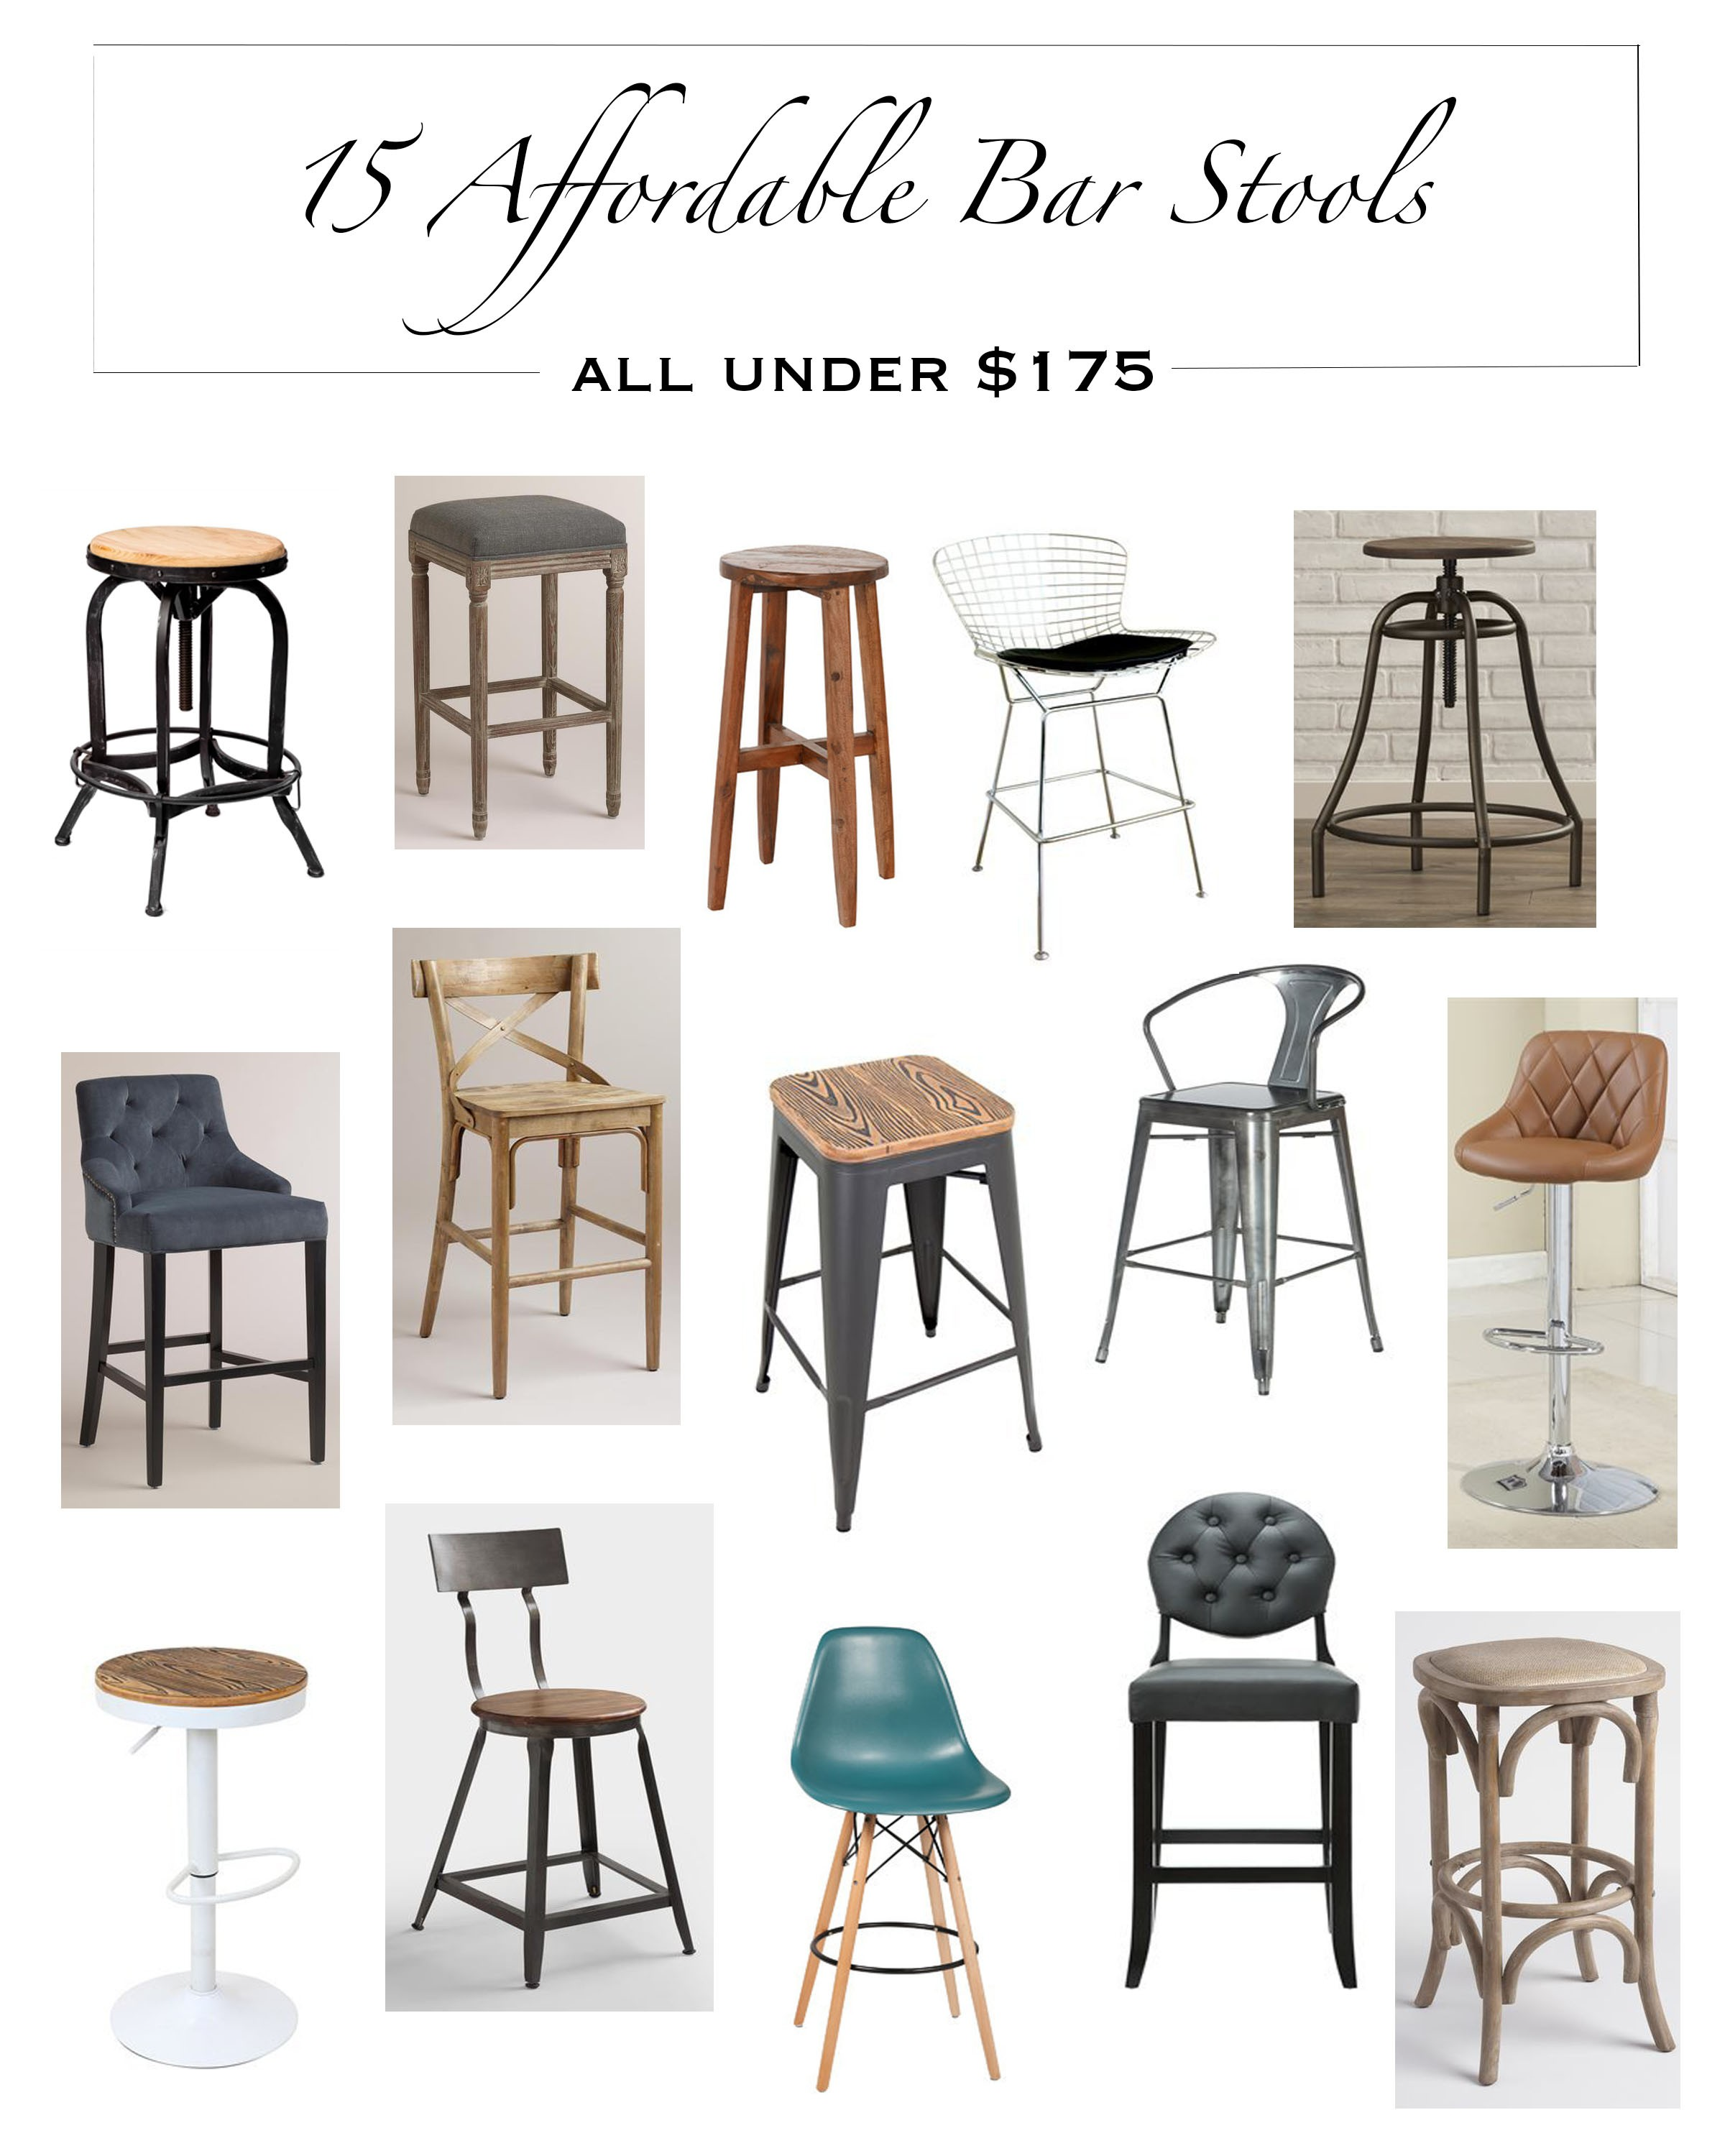 for and wrought off with home cozy tall plus target counter winsome saddle are black hayneedle height material leather attractive seat stools furniture how kitchen weston exciting swivel cool stool blue backs wooden set design inch scottsdale simple white chairs walmart discount of fabric cloth bar iron